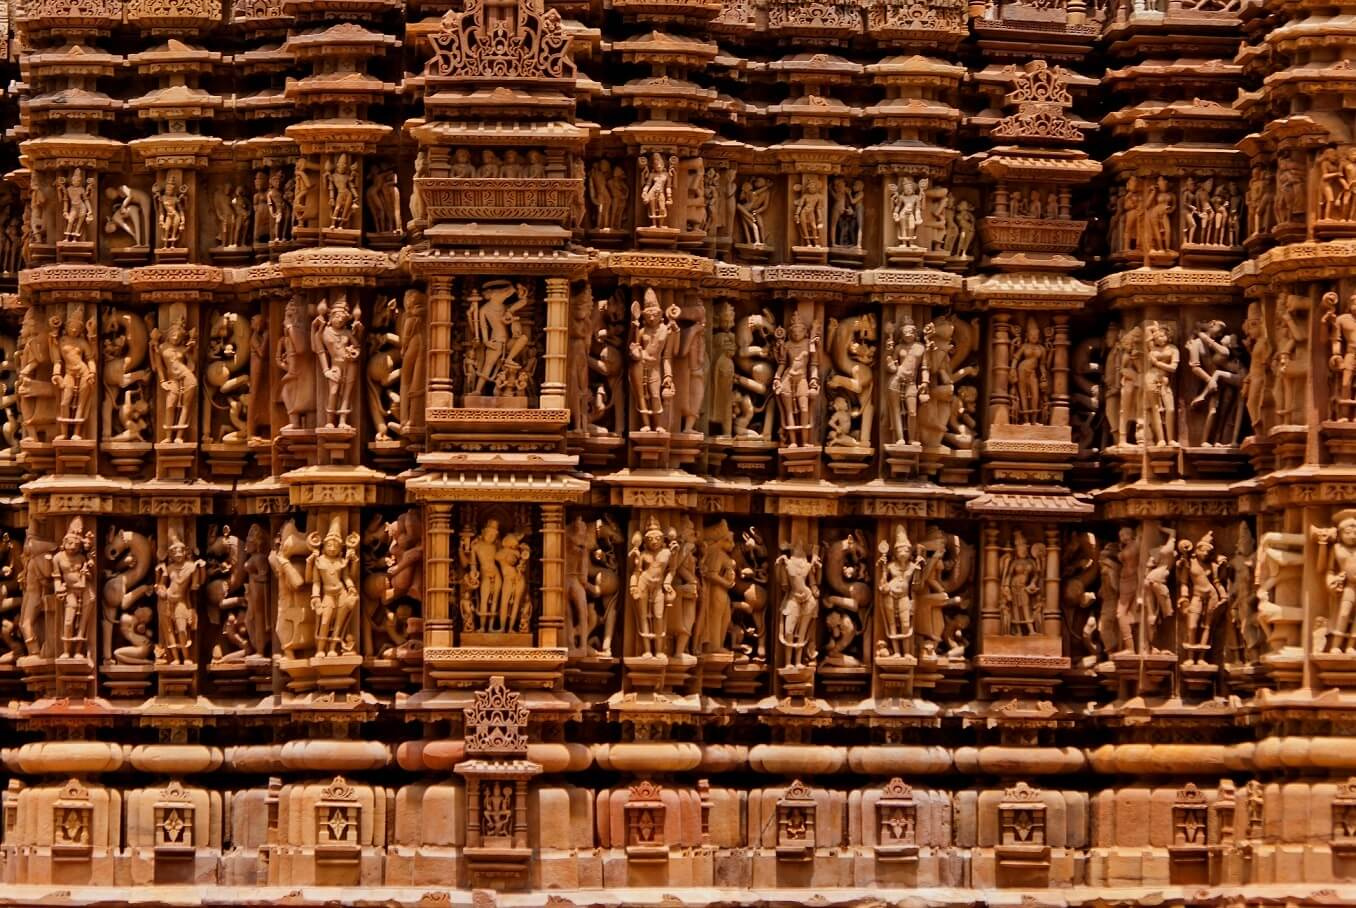 Beautiful photos of khajuraho temple and its erotic